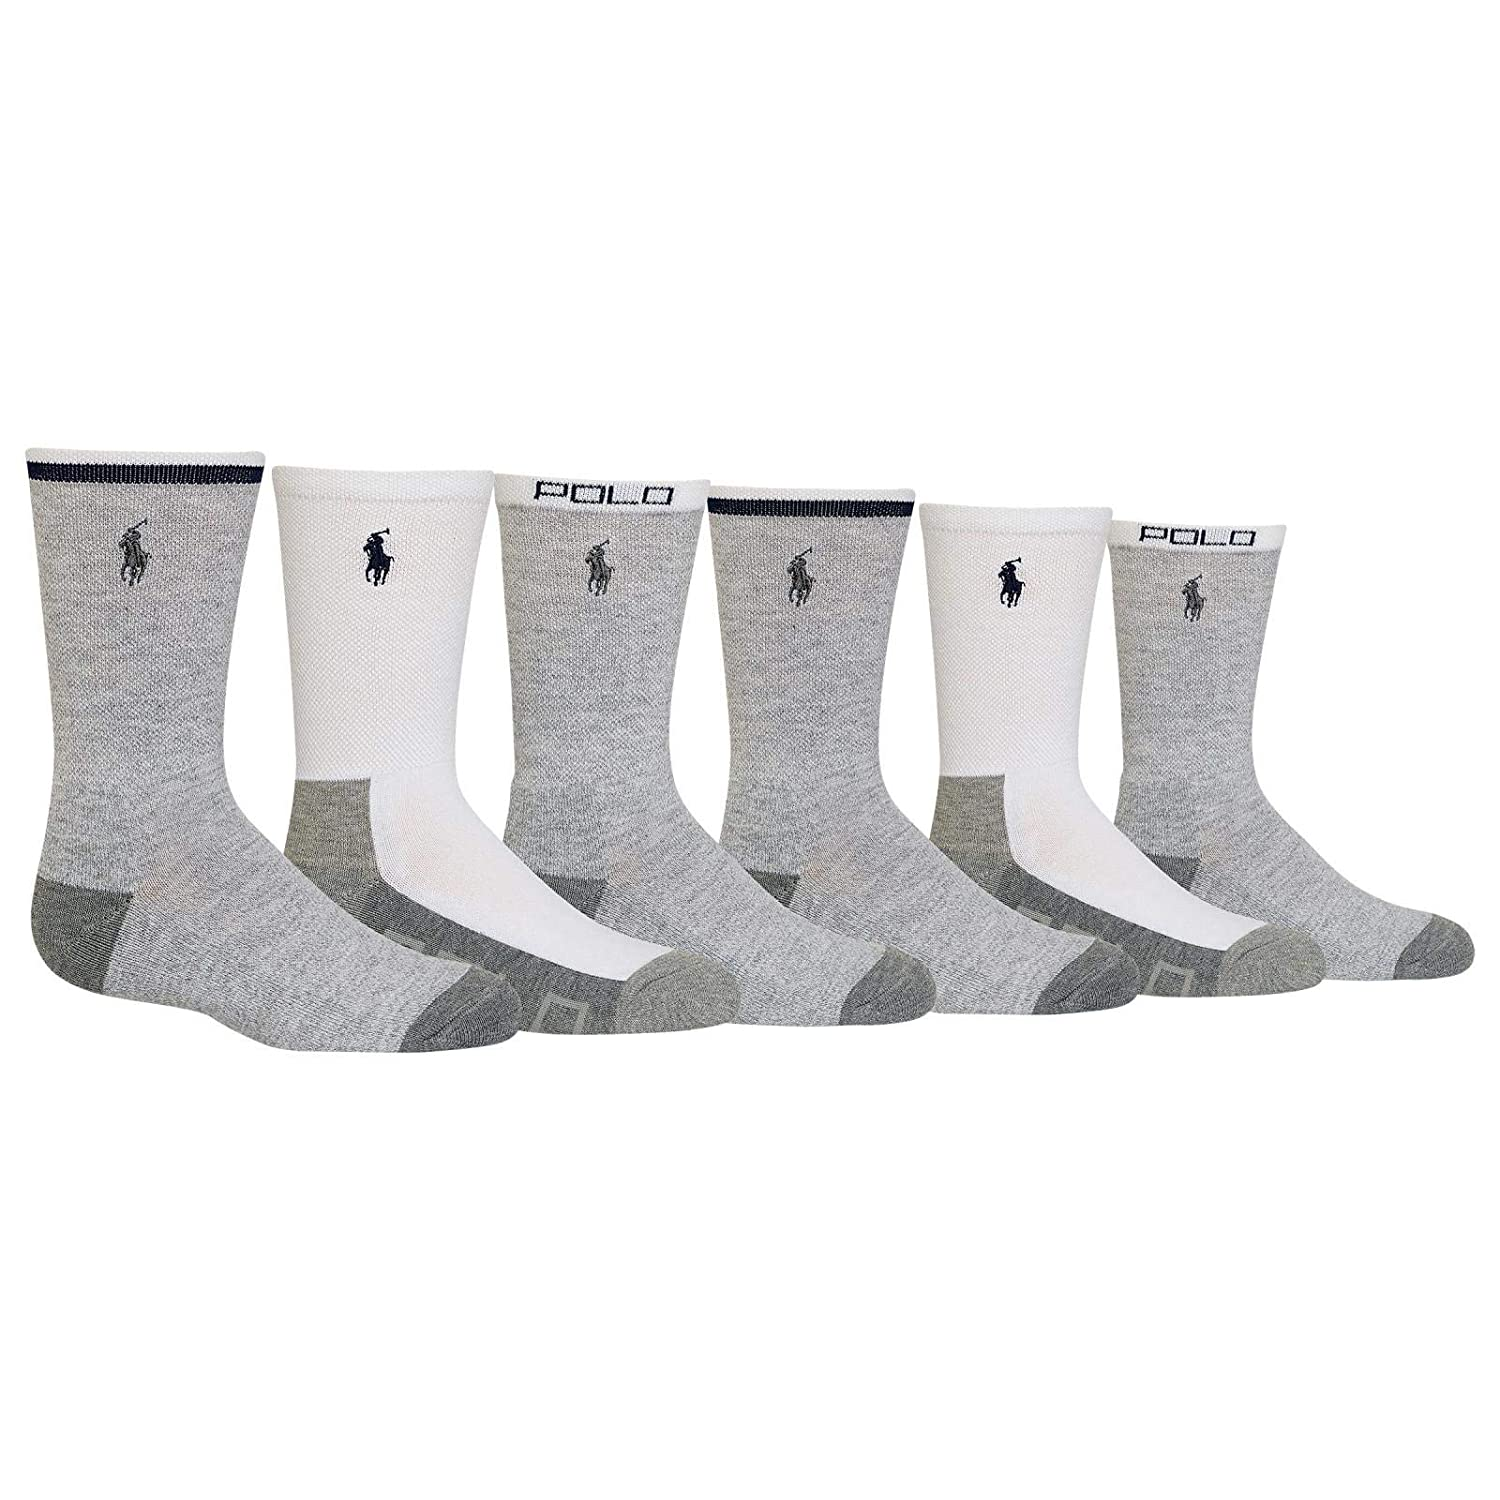 Polo Kids Socks for Boys 6-Pack Pique Sport Crew Socks Grey Assorted 2-12 Years Kids//Boys//Girls 4-10 Shoe// 9-11 Sock